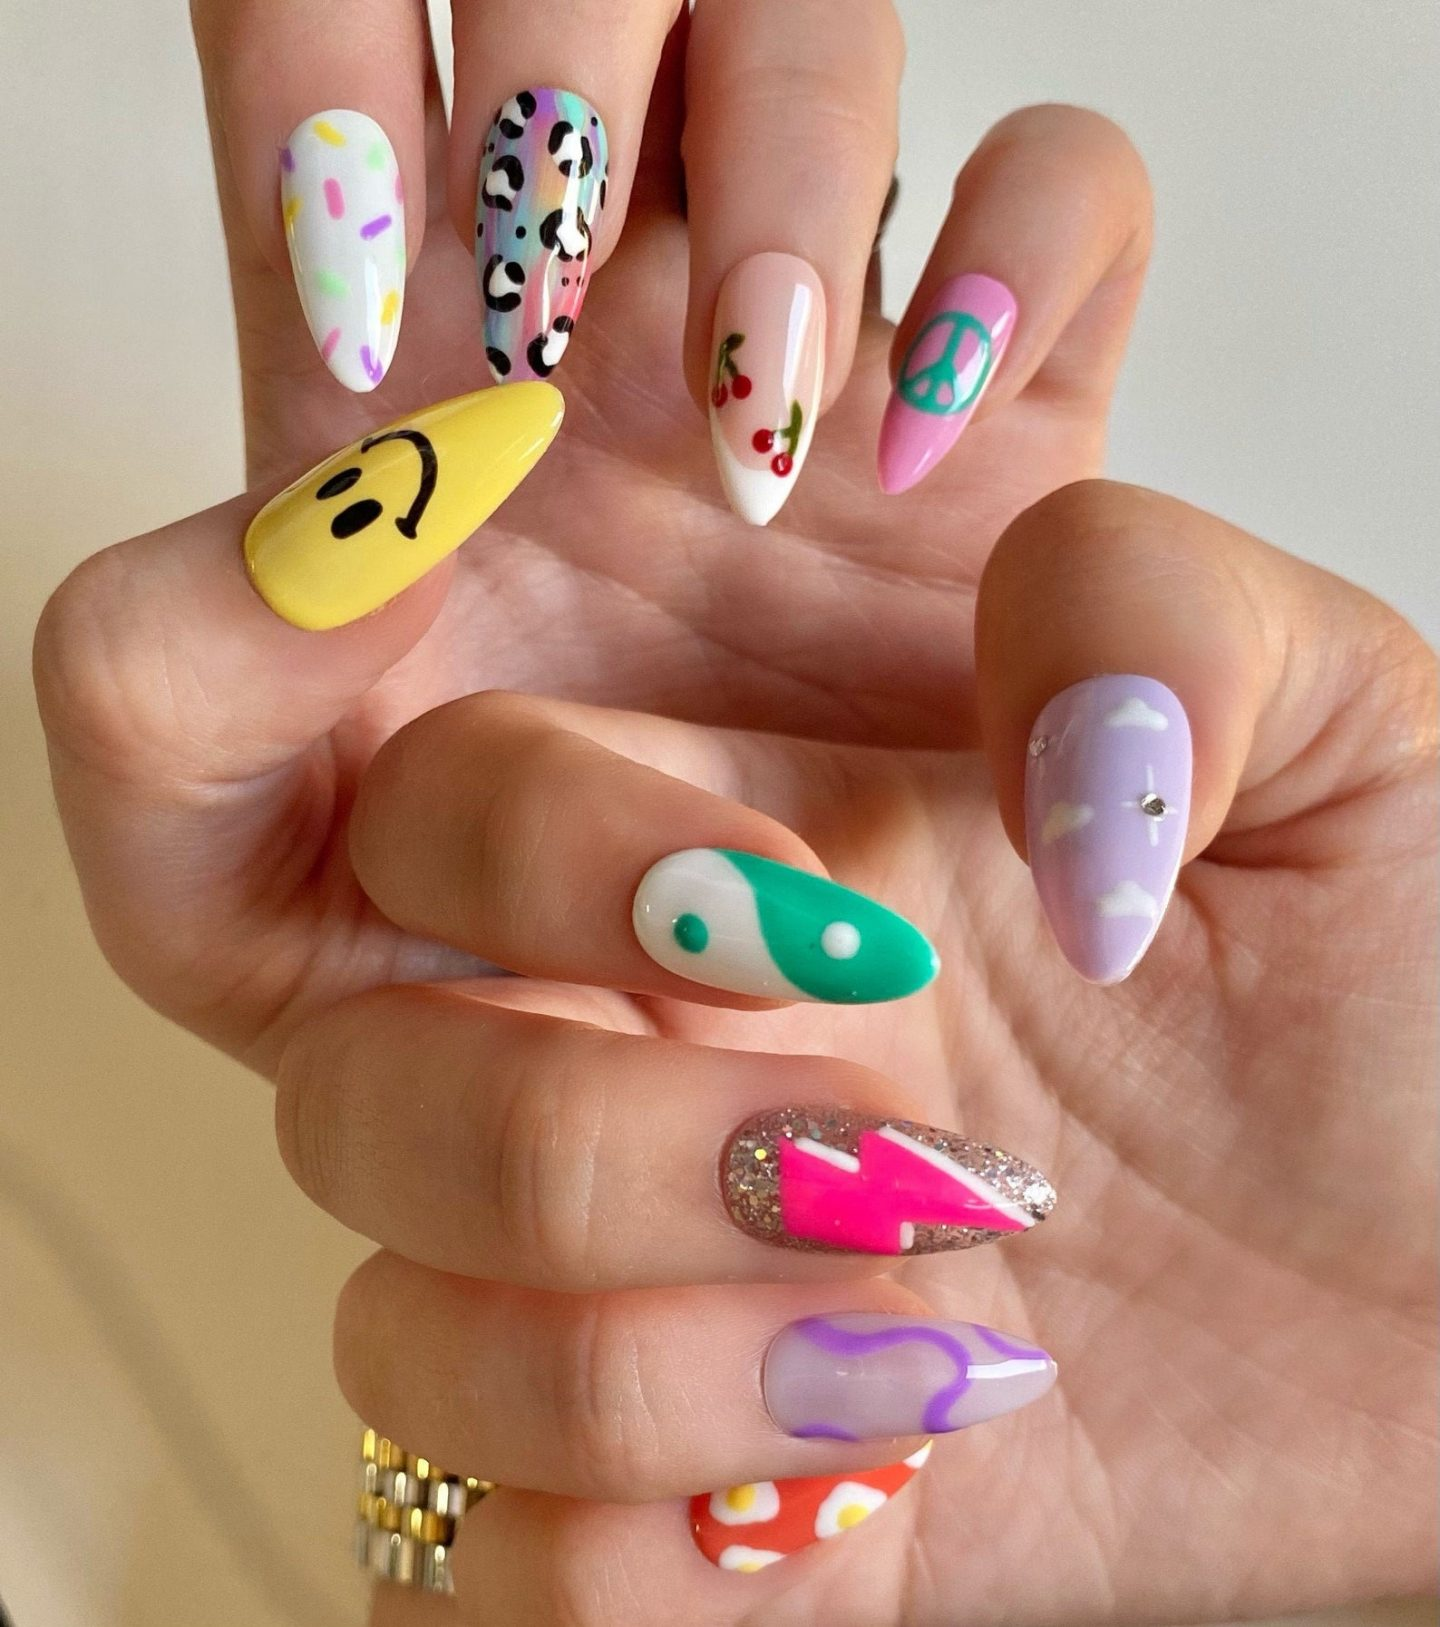 Cute mix and match y2k nails with emojis, yin and yang, and more